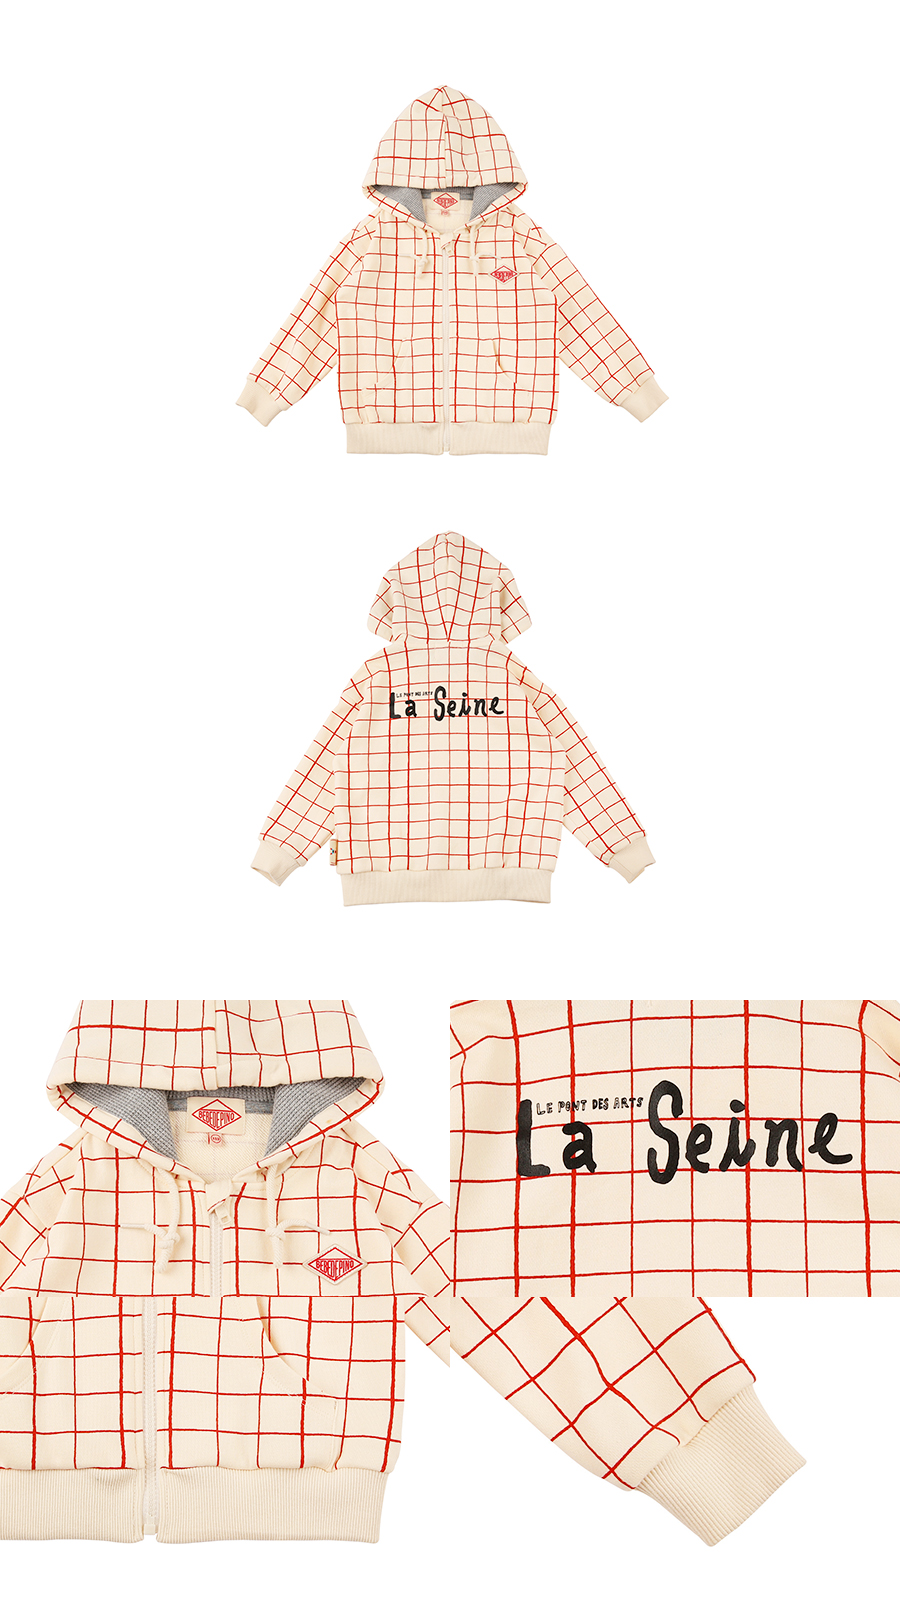 La seine check pattern sweat zip  hoodie 상세 이미지